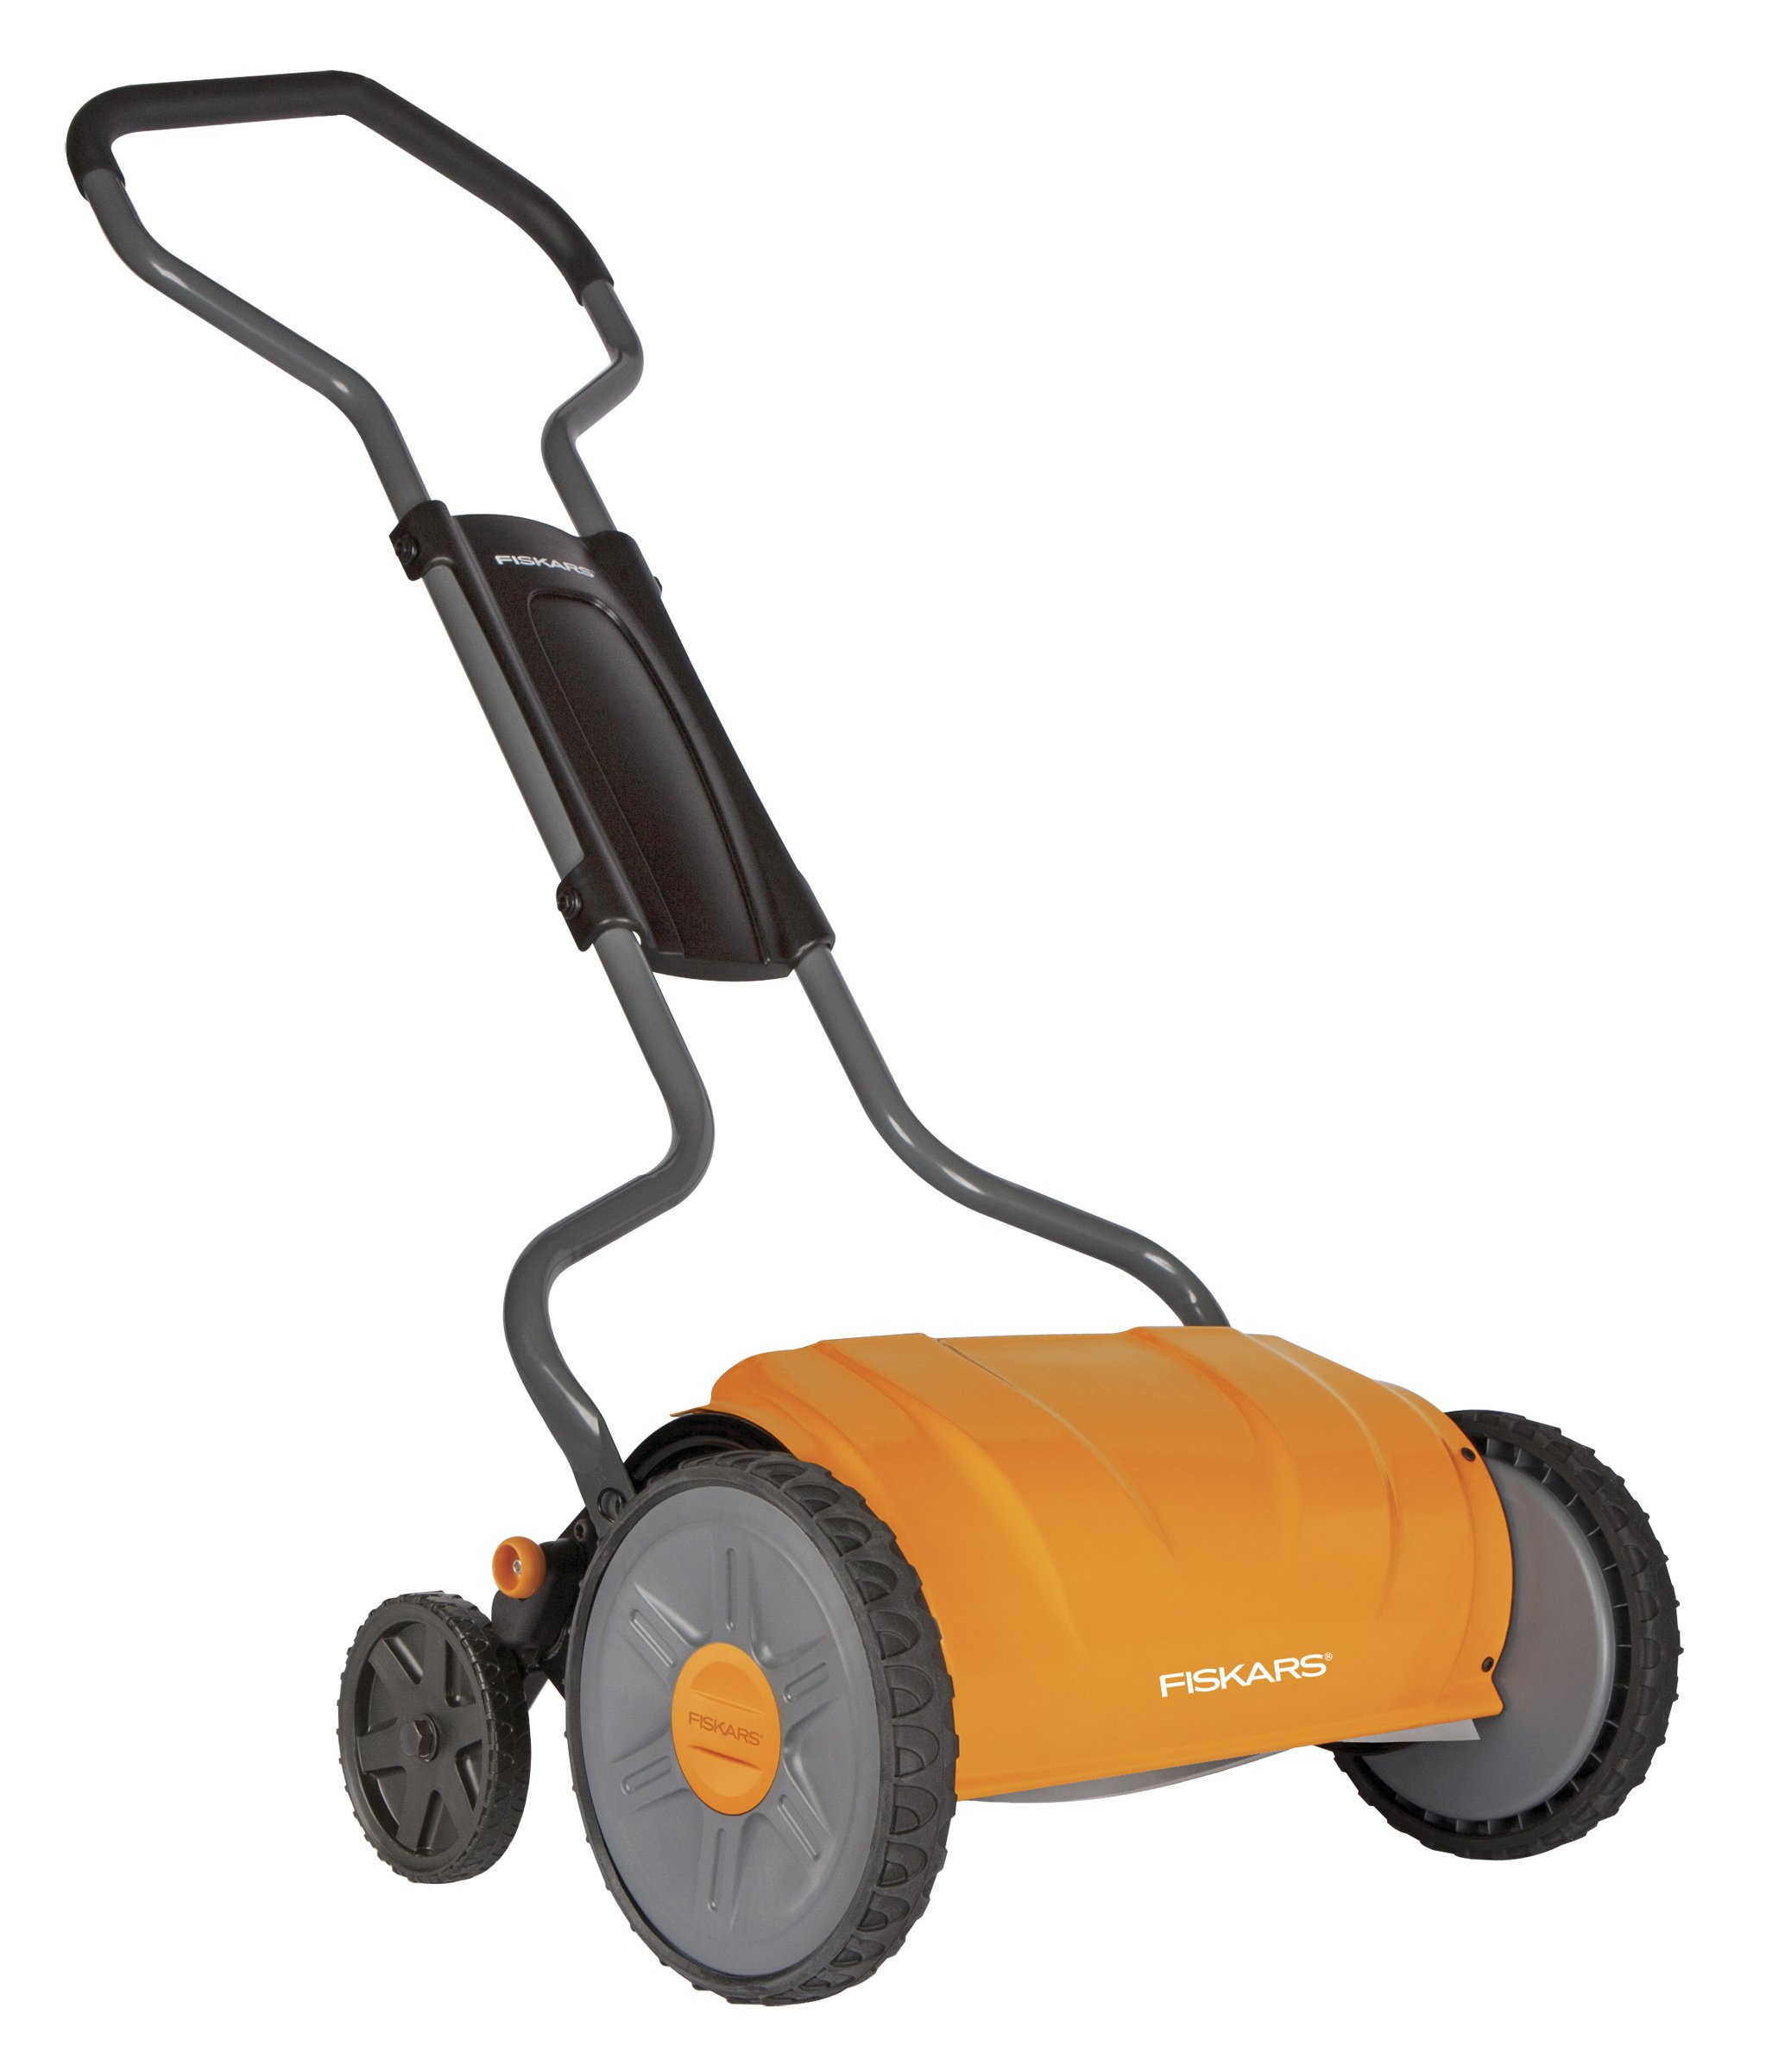 Fiskars 17 Inch Staysharp Push Reel Lawn Mower (6208) by Fiskars